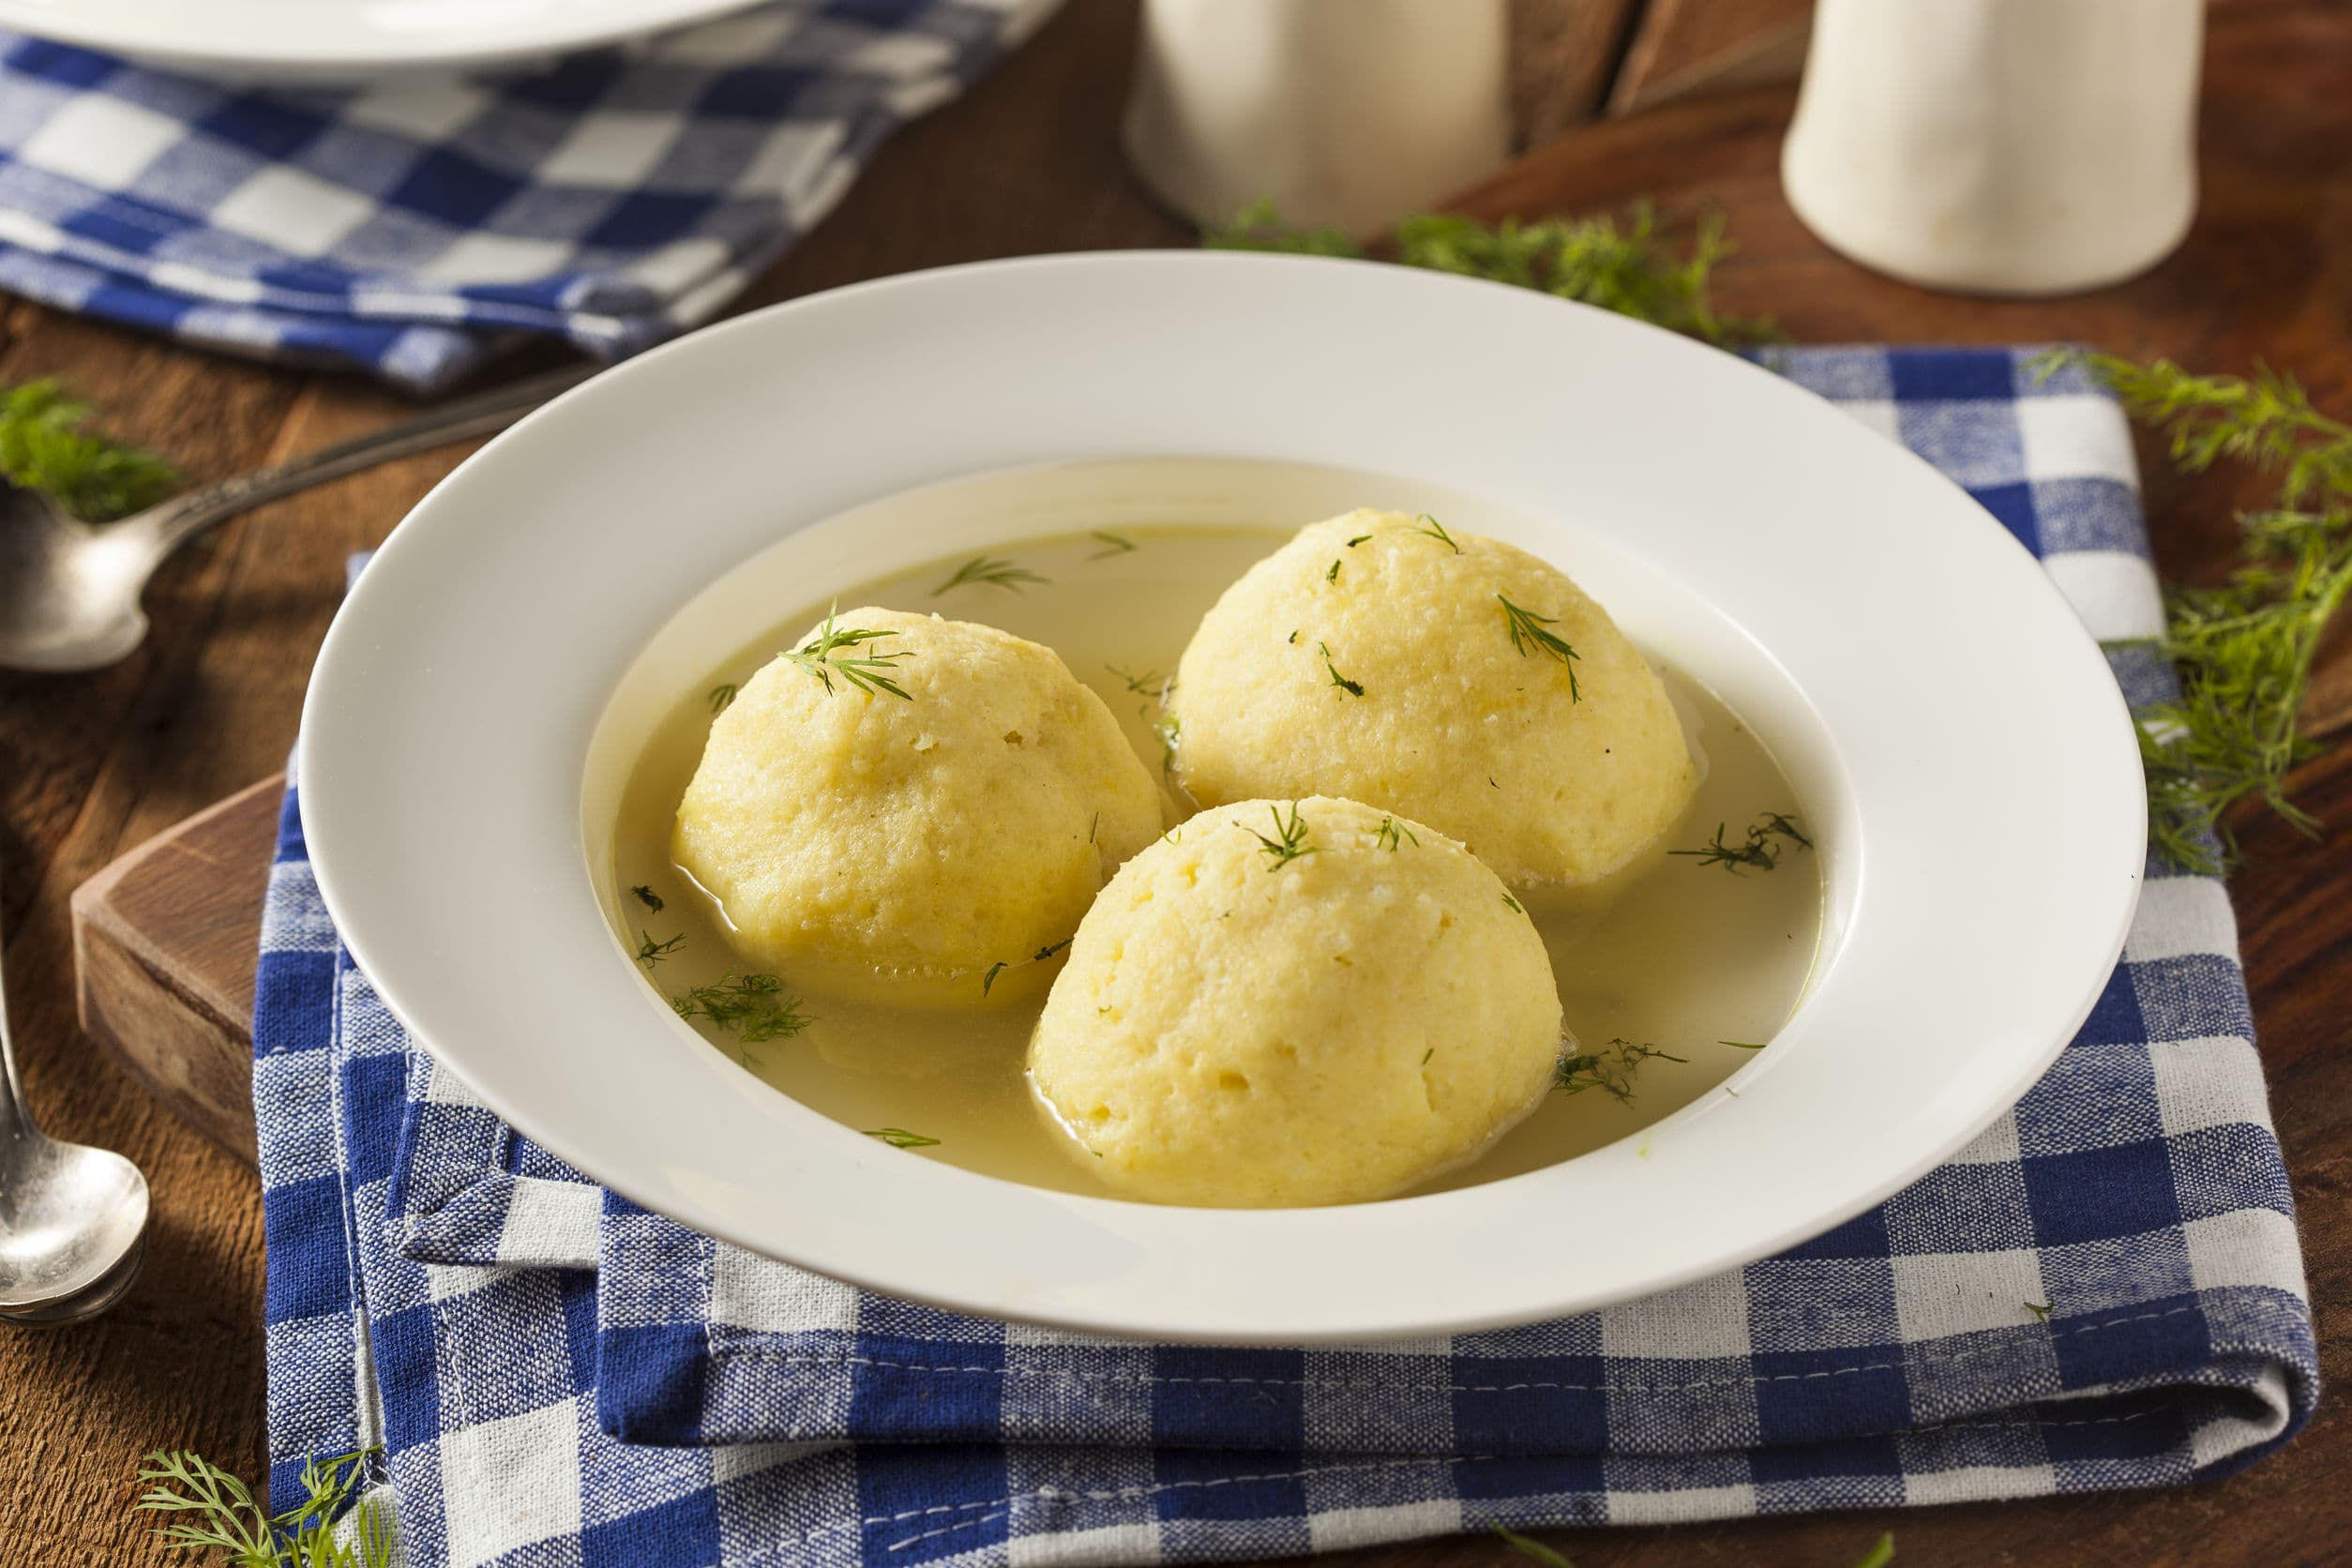 Celebrate Passover And Easter with Matzo-Ball Soup